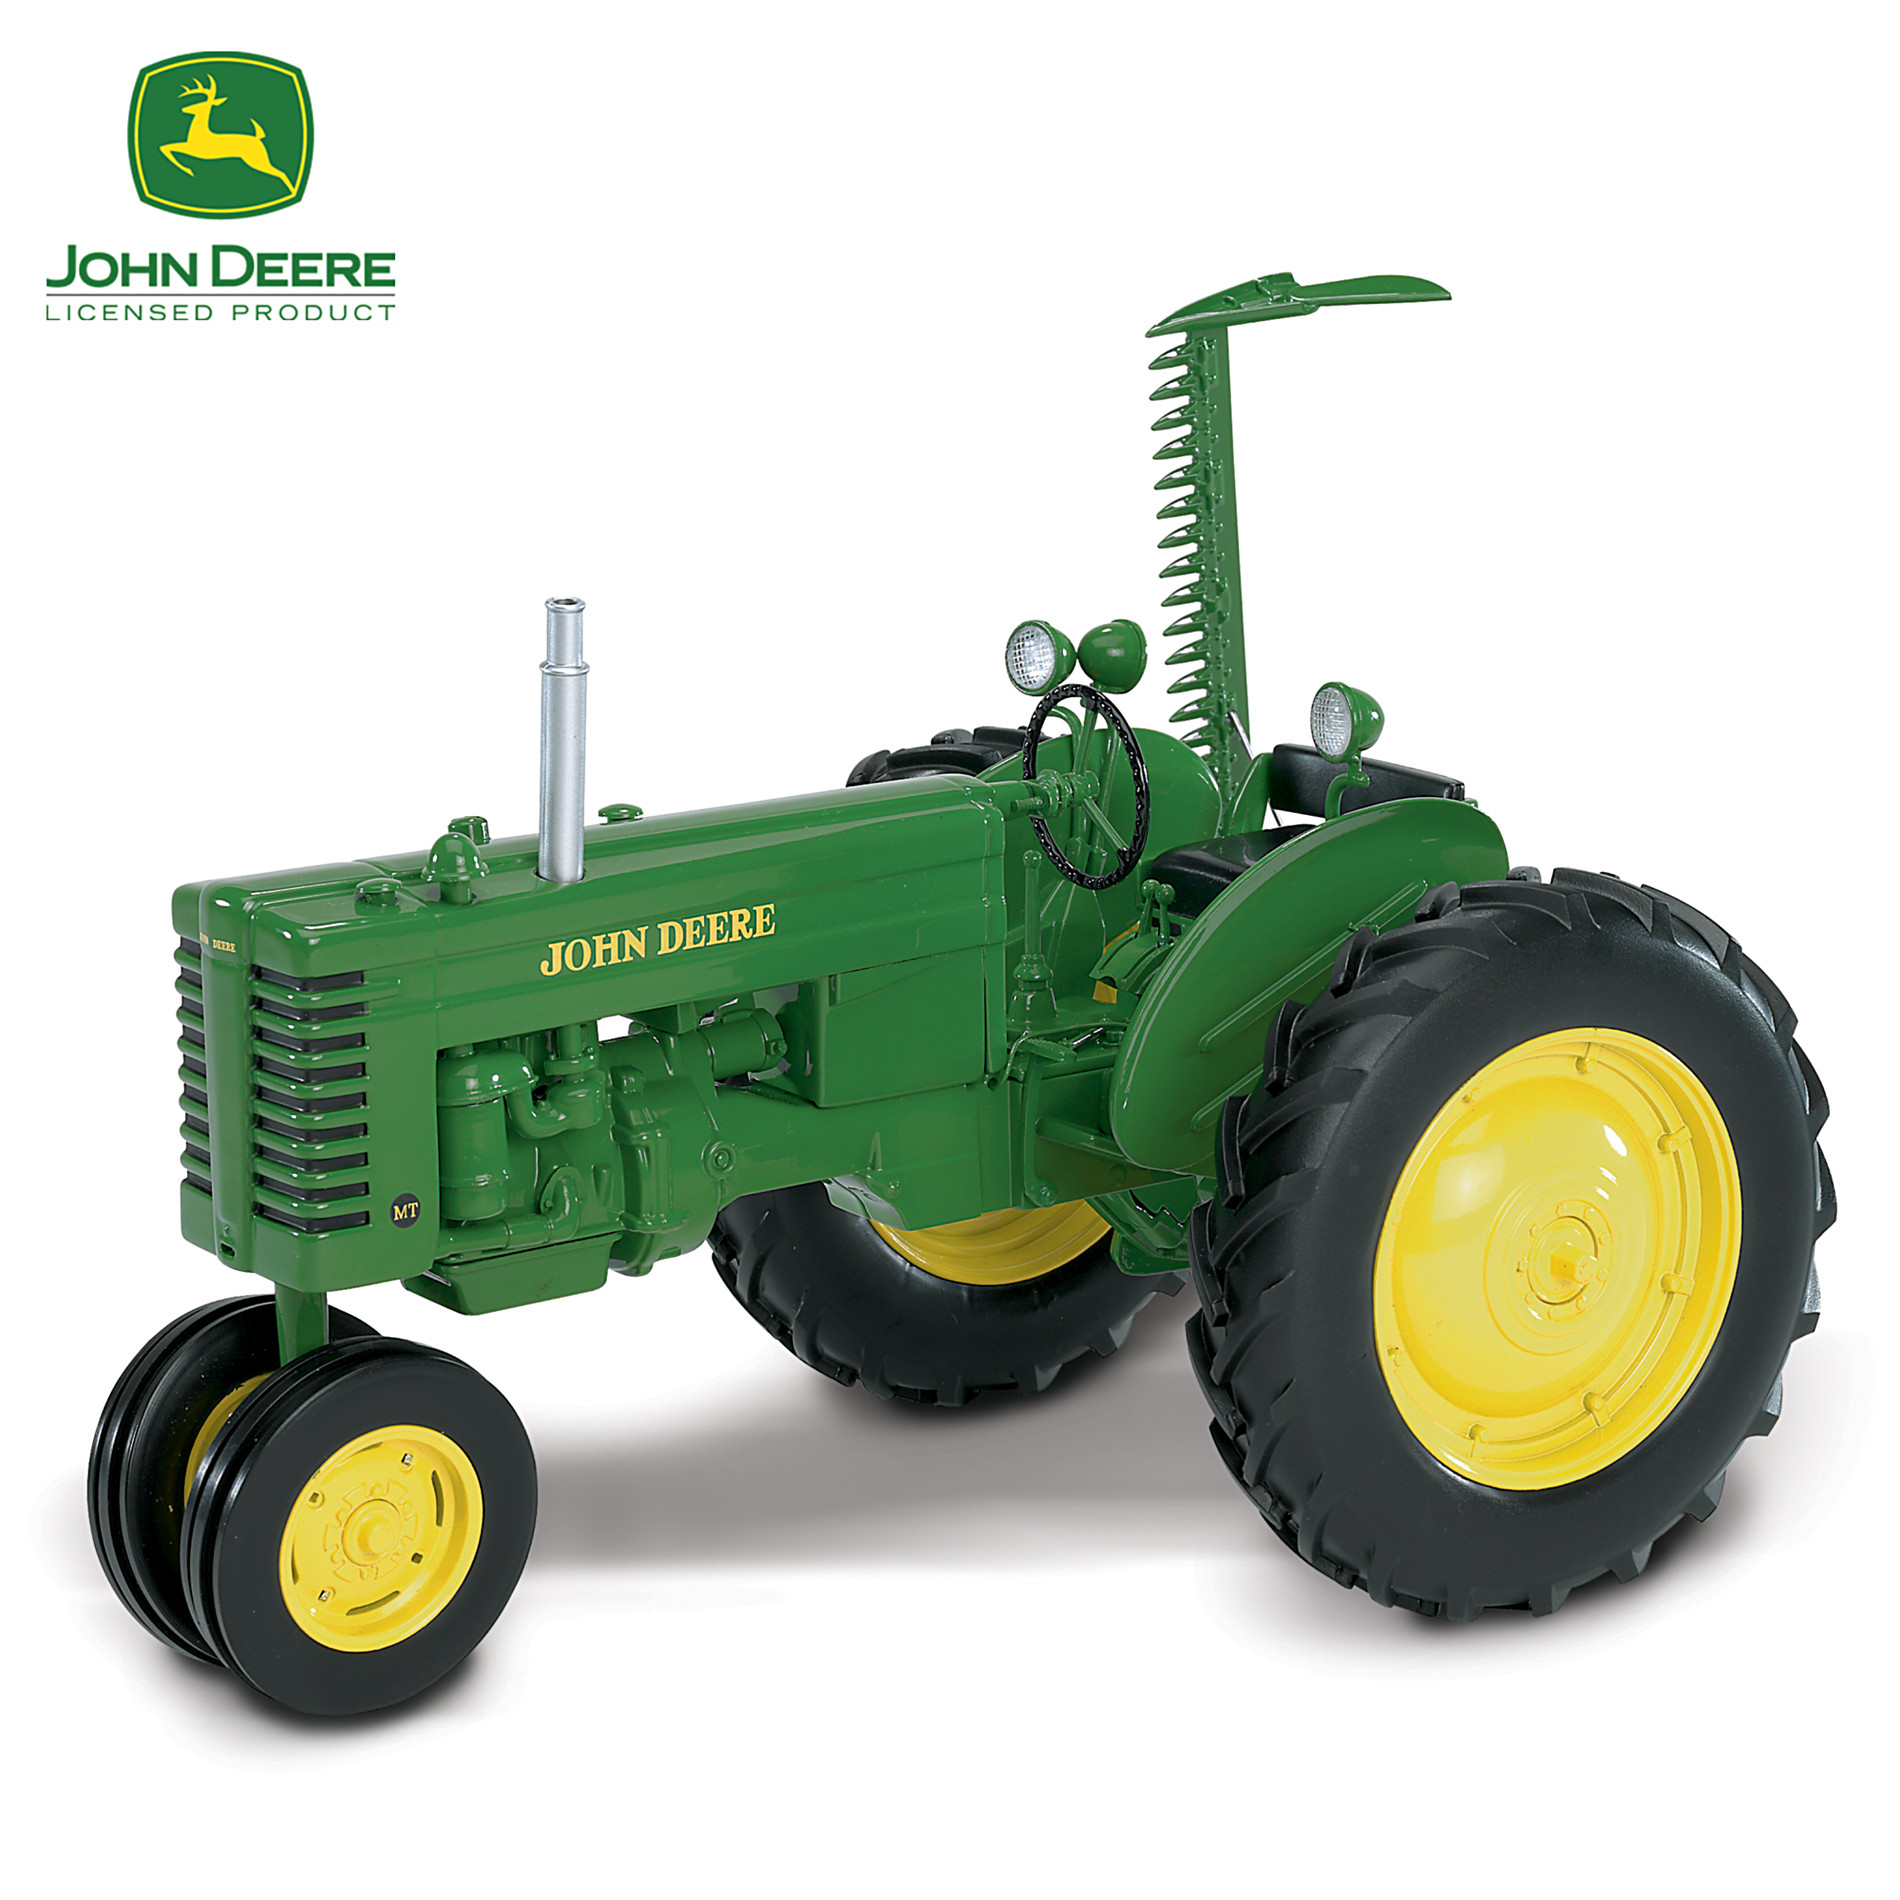 The Hamilton Collection John Deere 1:16-Scale Diecast Tractor: Model 'MT' Tractor With Sickle Mower at Sears.com